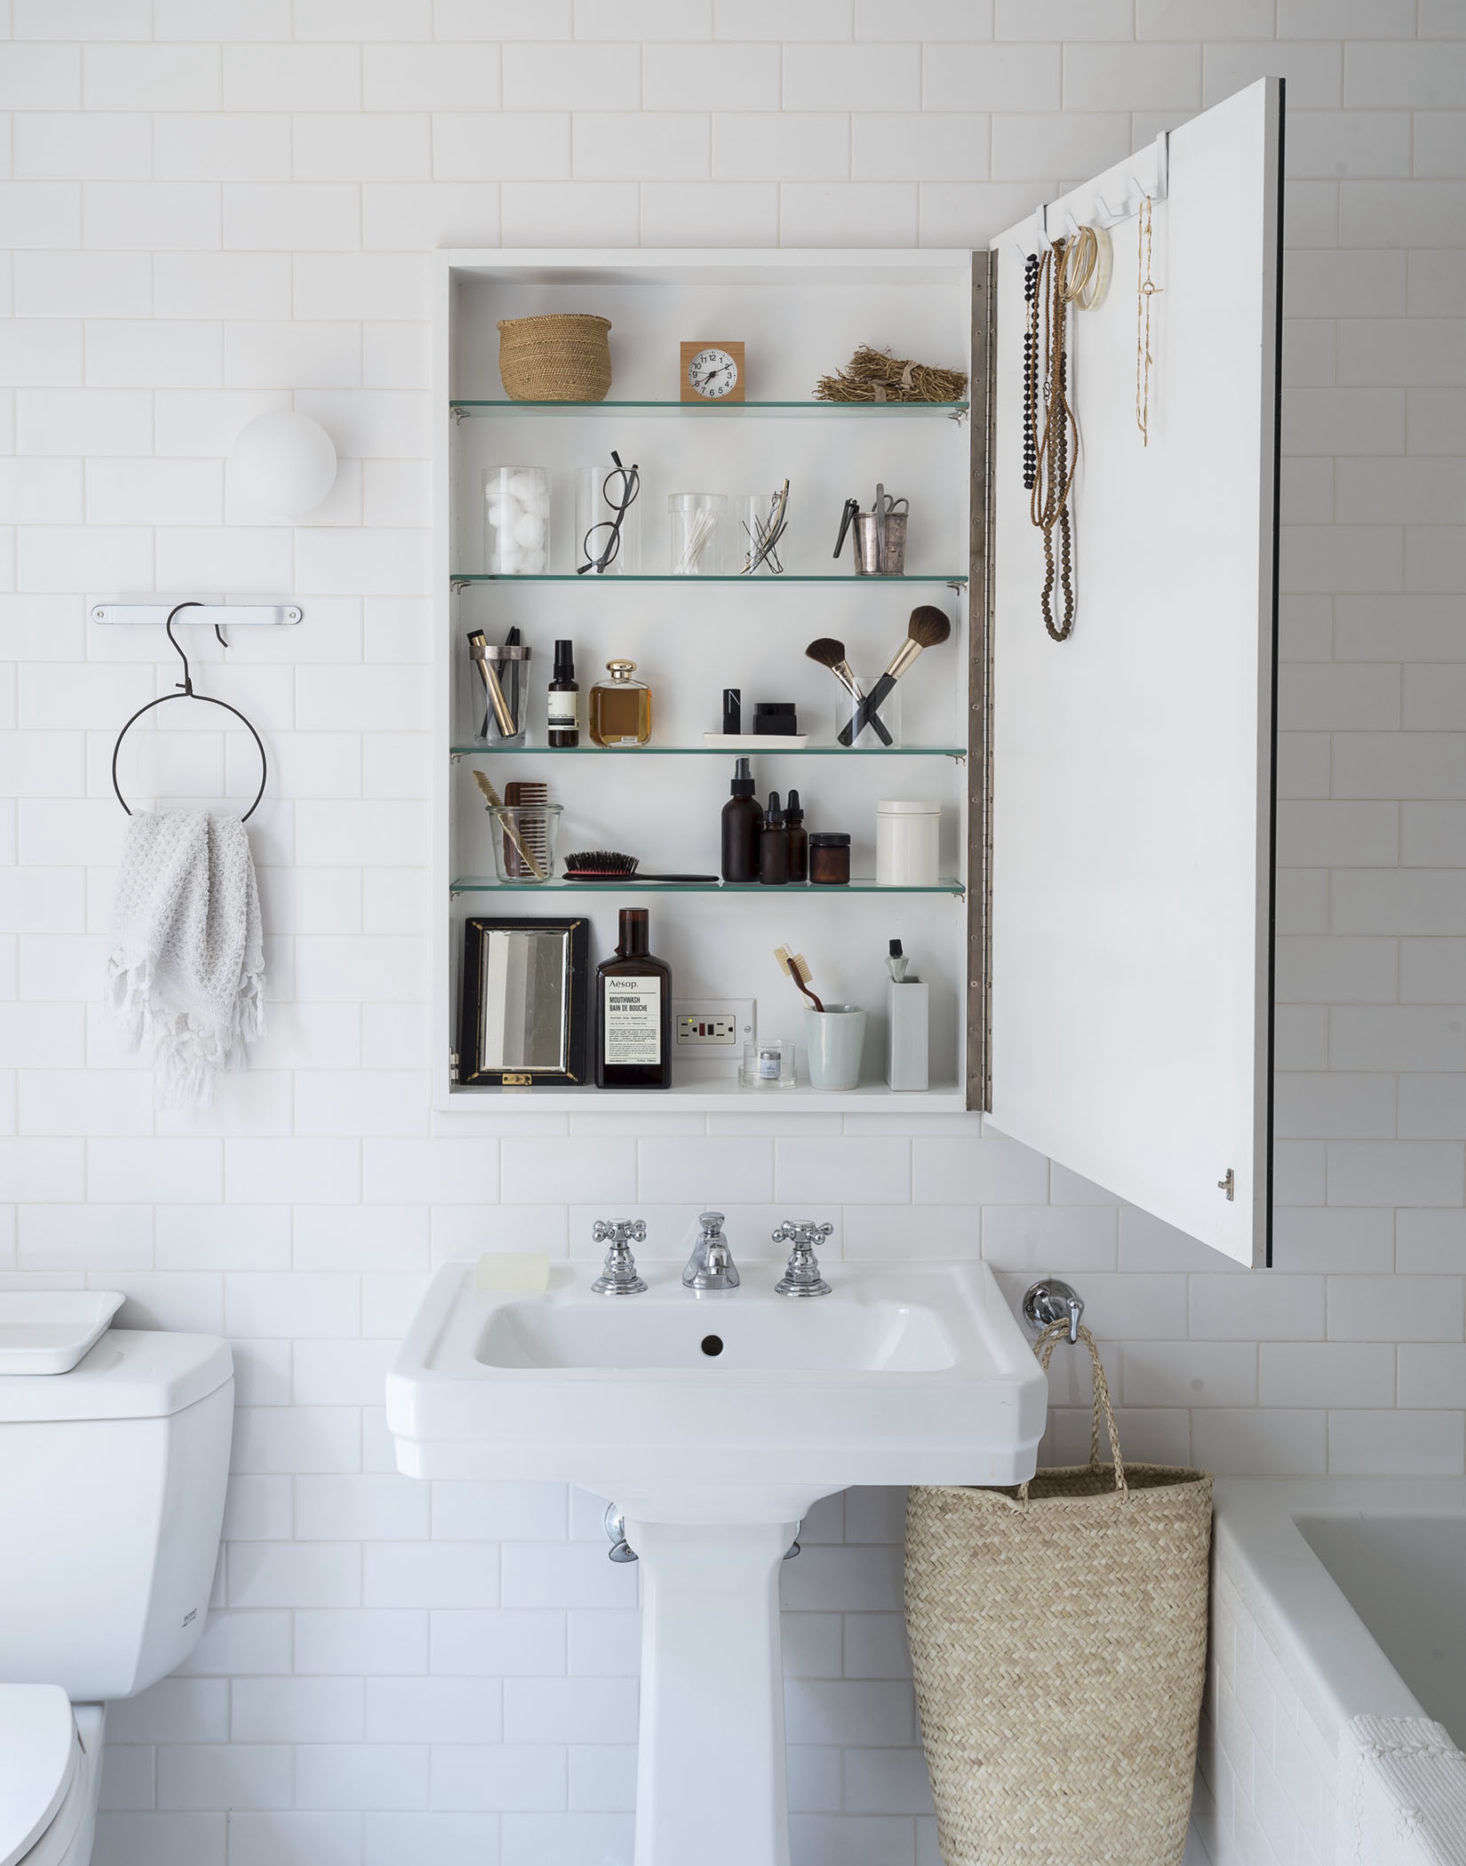 Trending On The Organized Home Stylish Small Spaces Remodelista